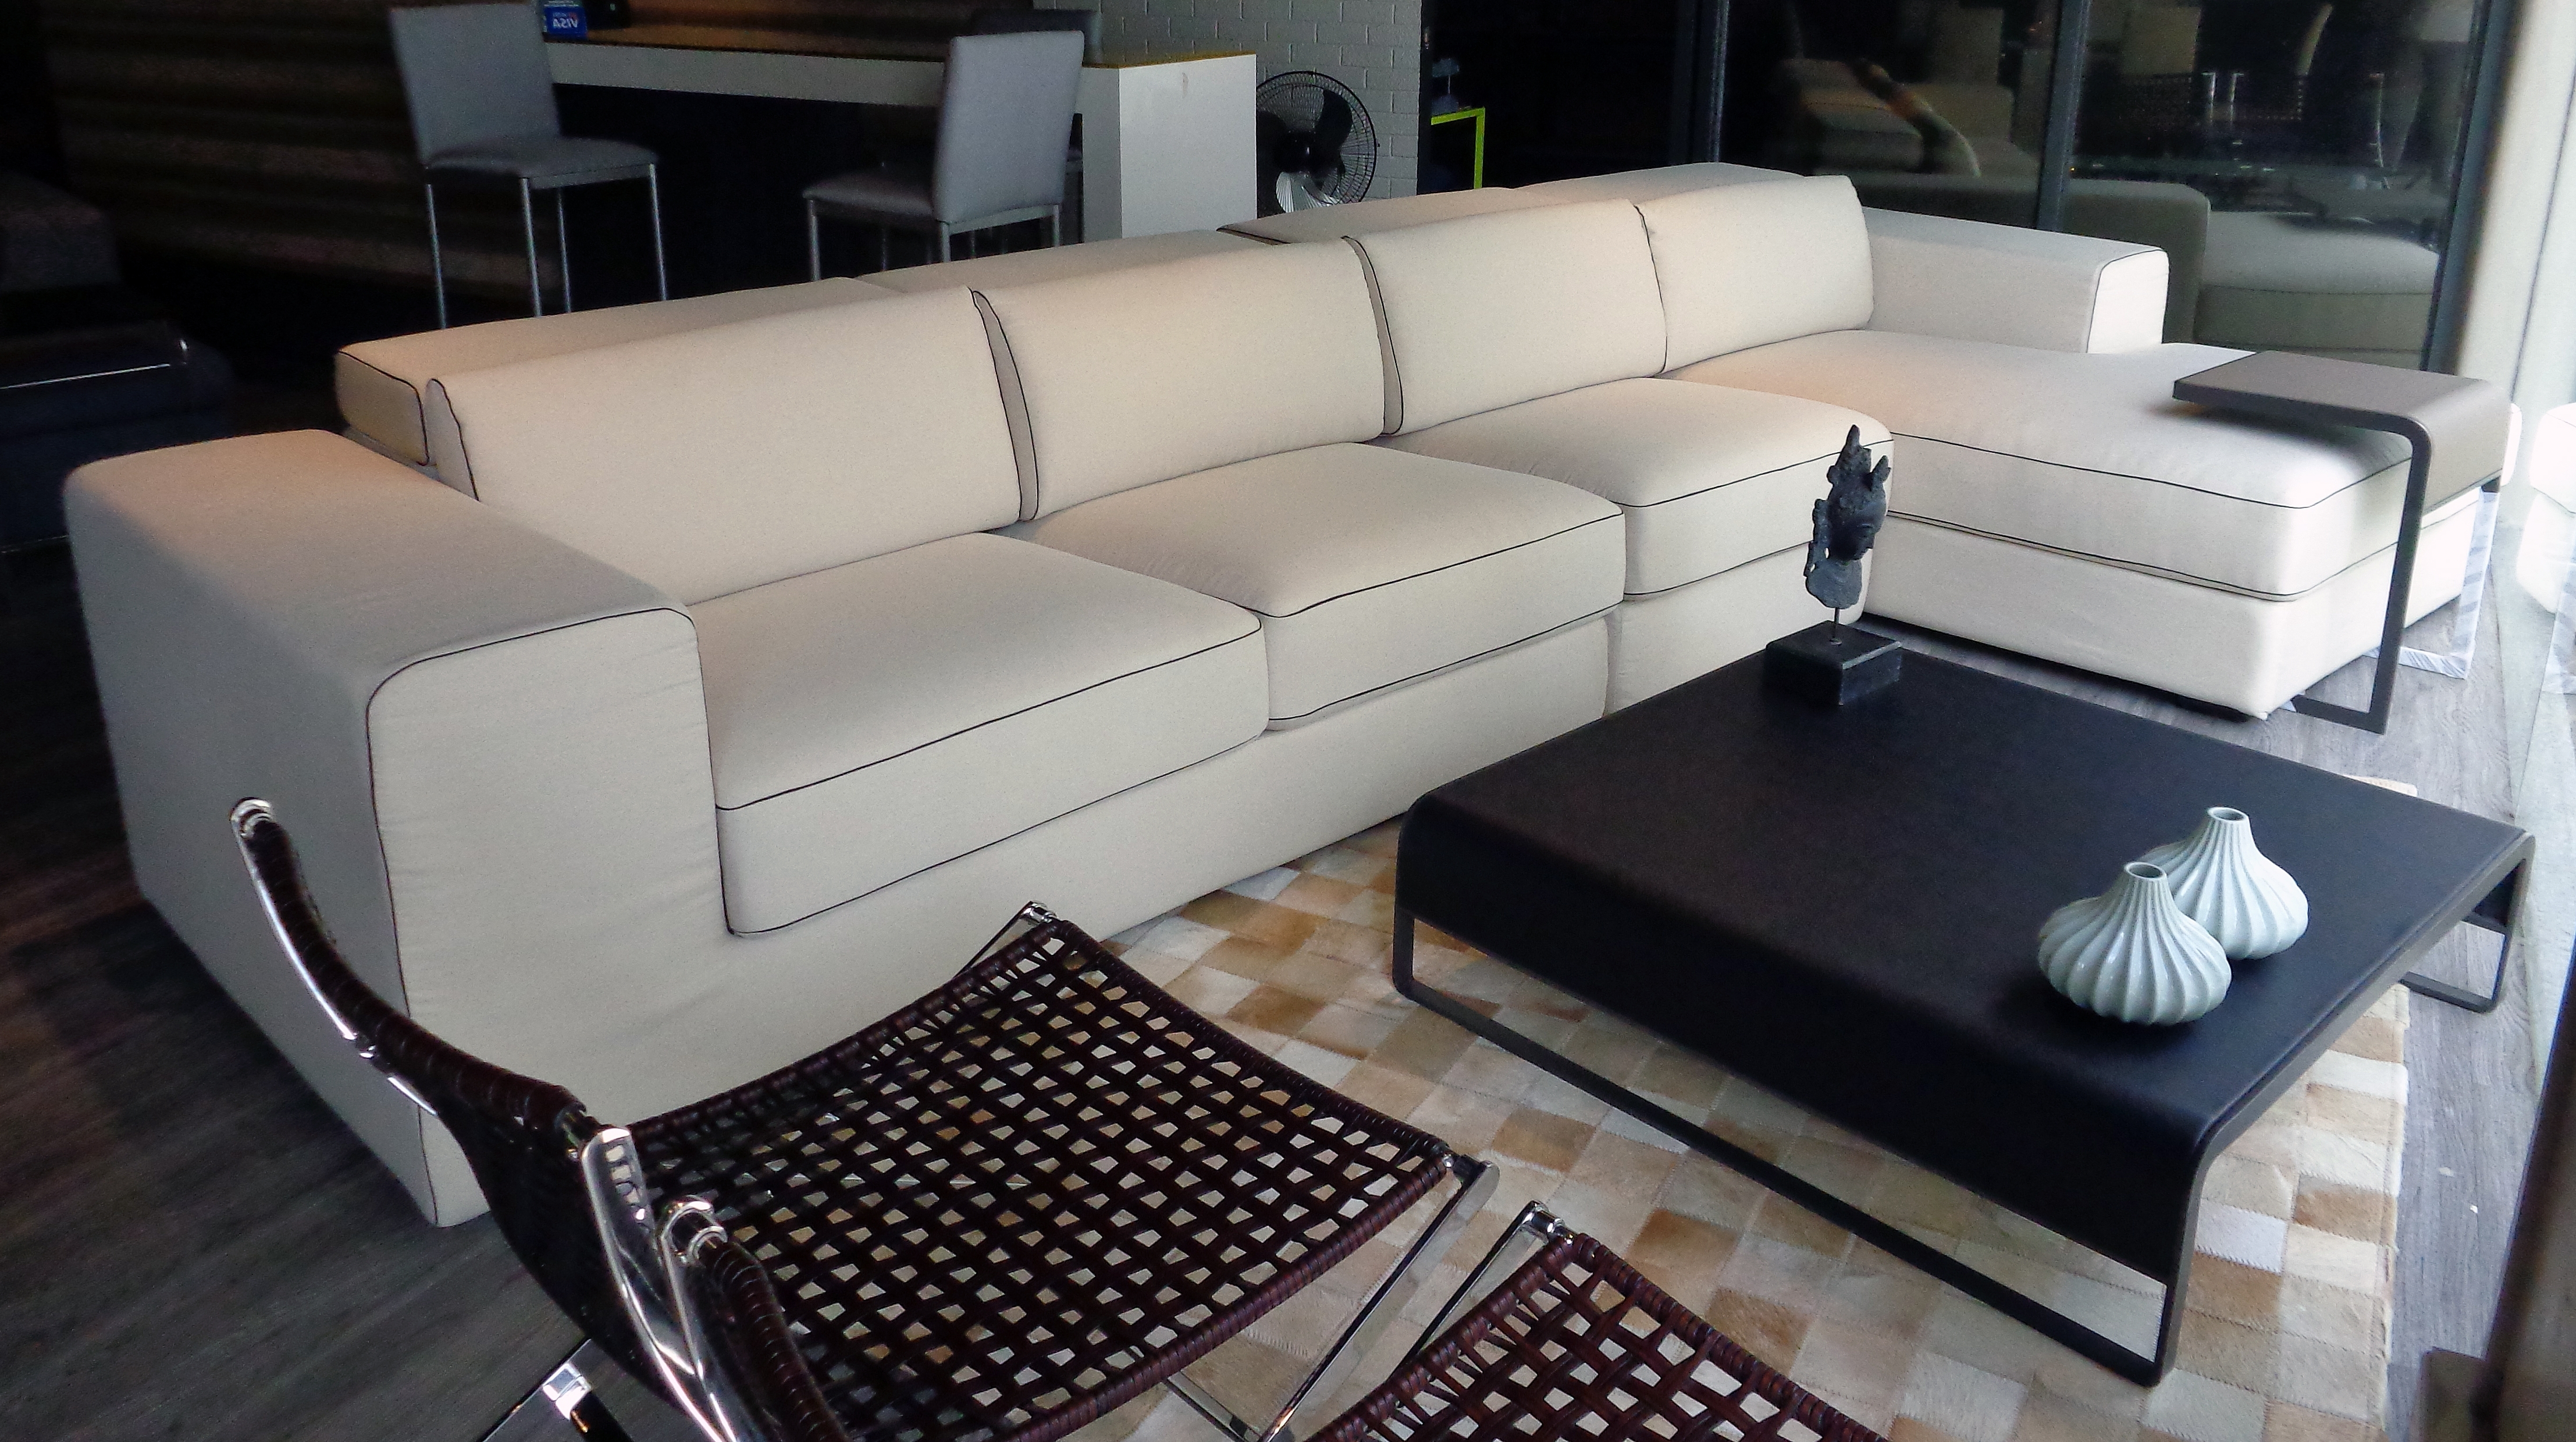 Sectional Sofas – Home Central Philippines For Most Recently Released Philippines Sectional Sofas (View 11 of 15)